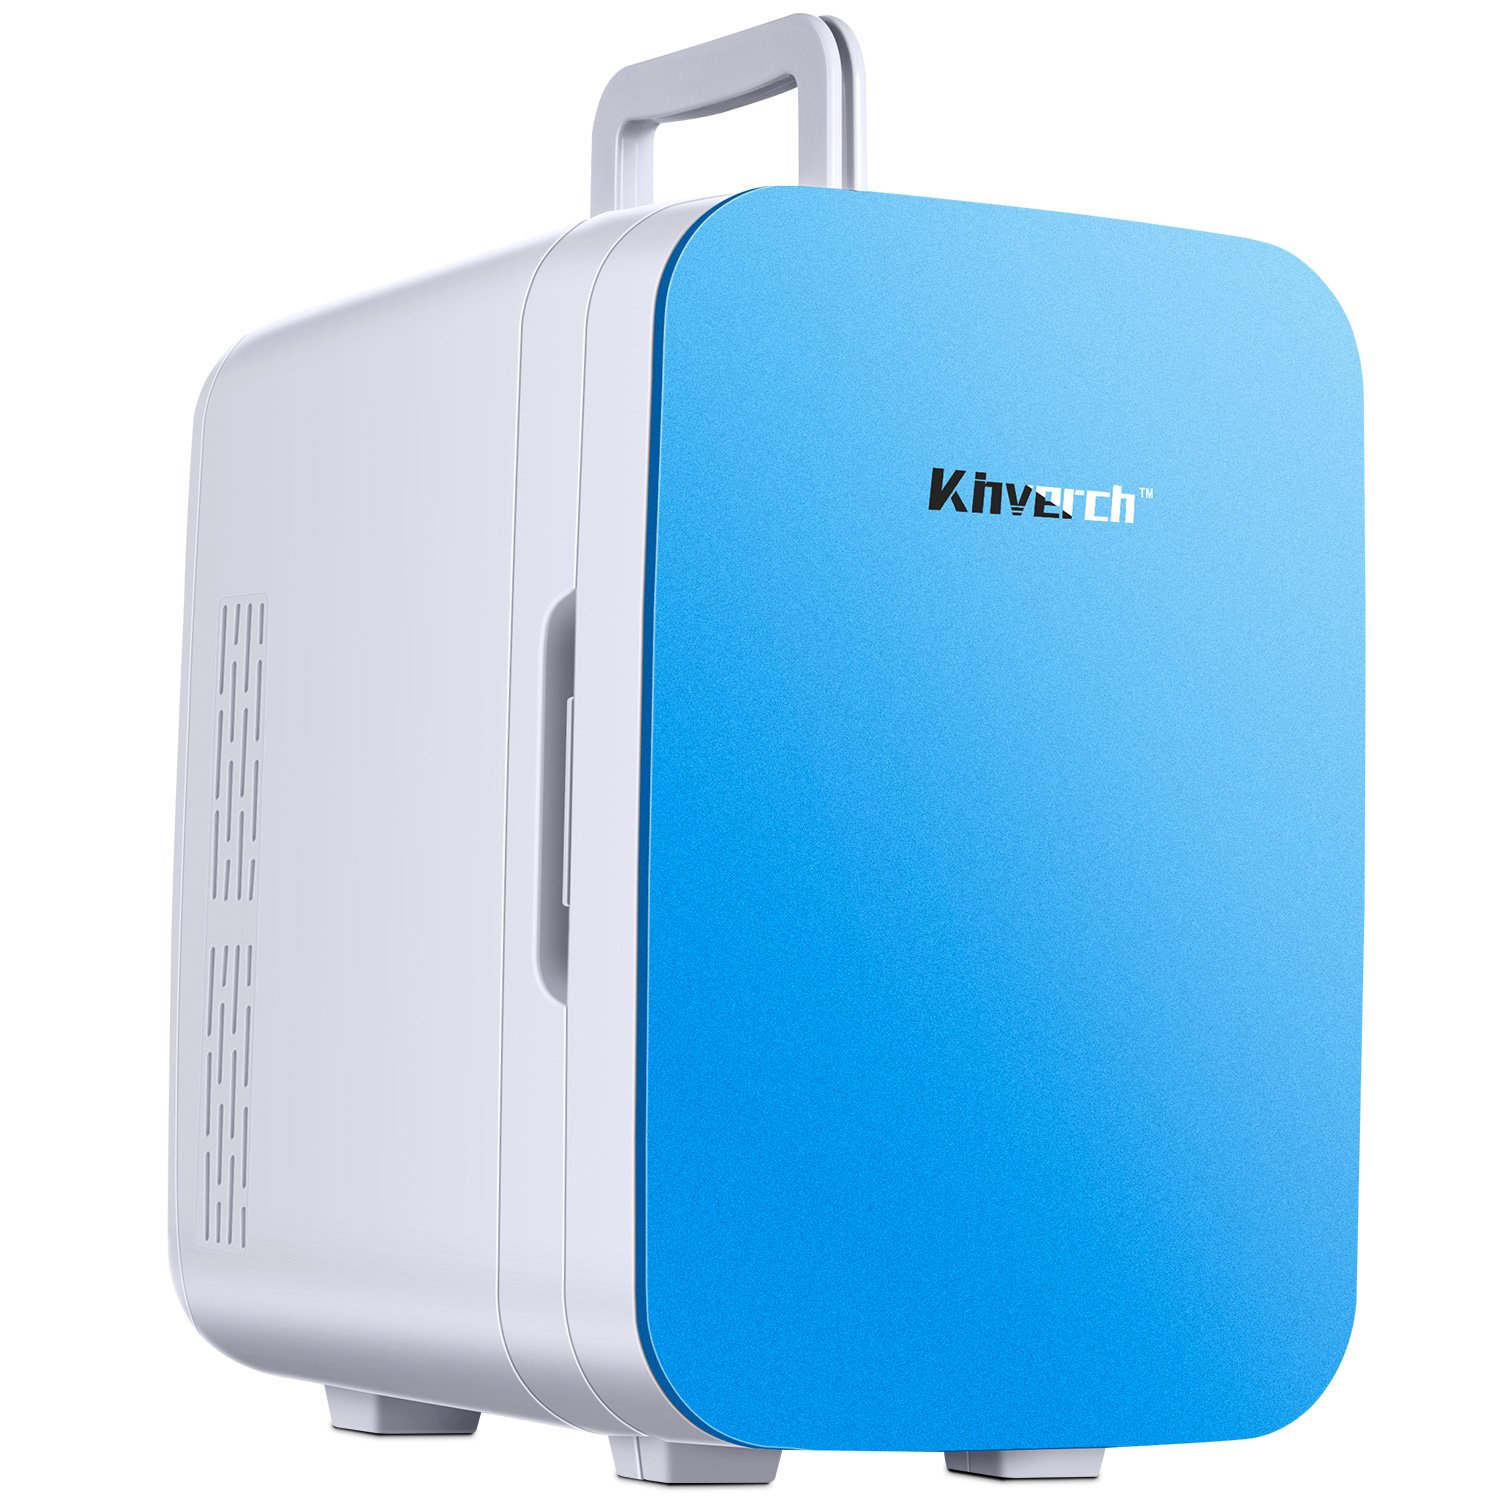 Kinverch Mini Fridge Electric Cooler and Warmer(10L/11Can) :110v AC/12V DC Portable Thermoelectric System,For Car/Home/Kichen/Junket/Outdoor for frinds/parents/yourself 10L (Blue)